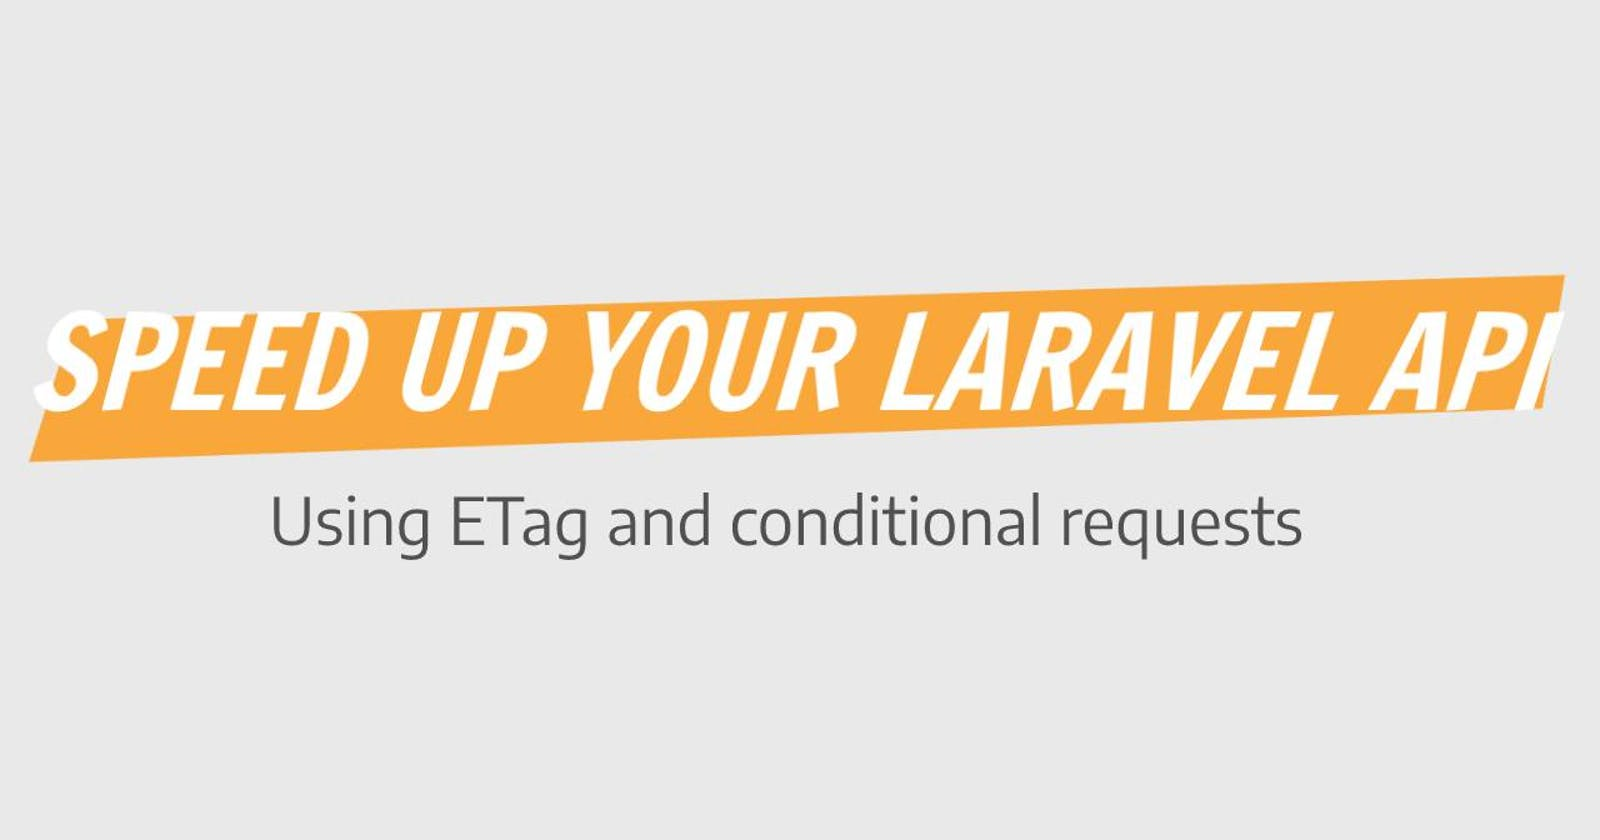 Caching your Laravel API with ETag and Conditional Requests